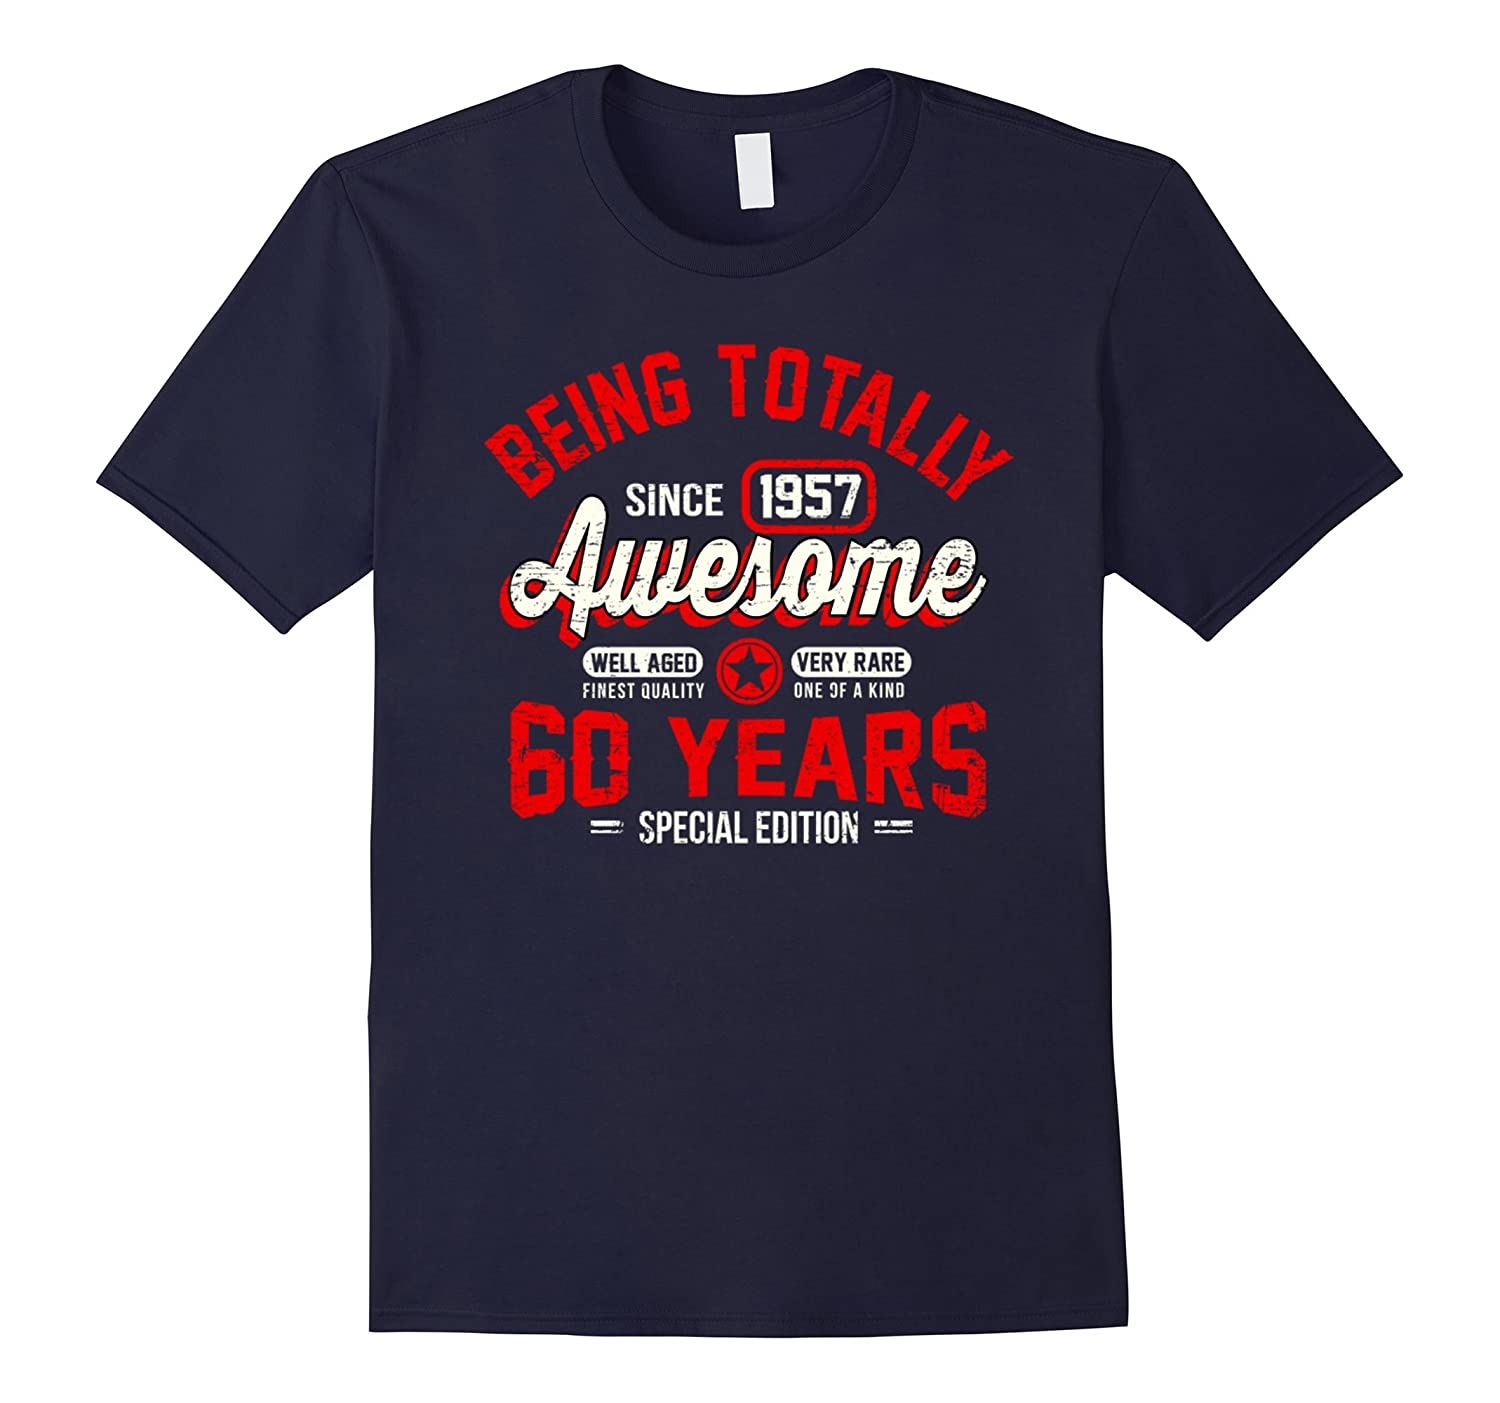 Legends Are Born In 1957- Age Perfection Shirt,60 years-BN